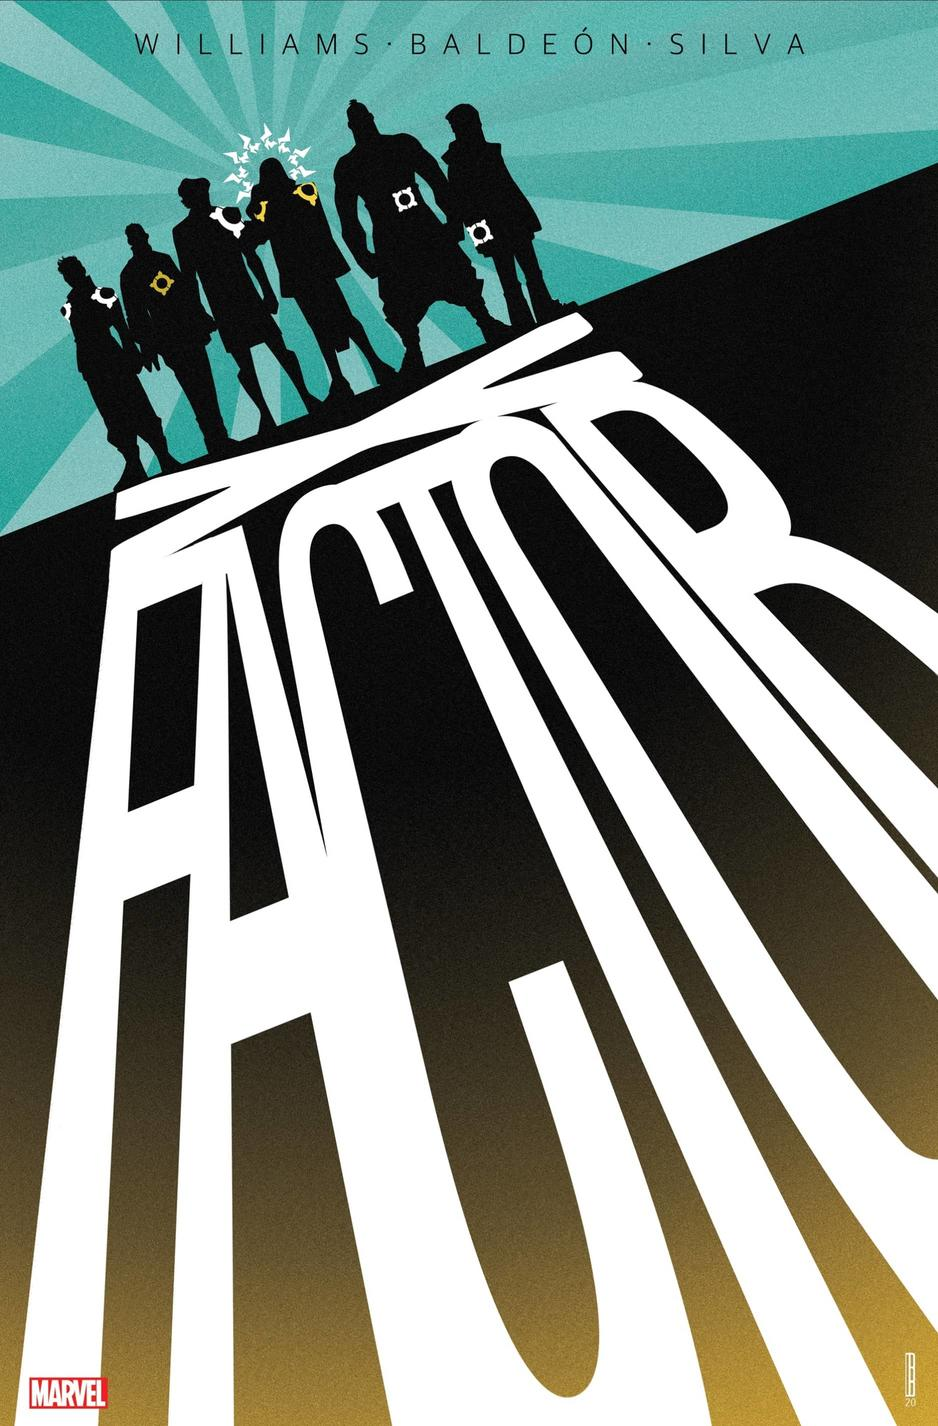 X-FACTOR #1 variant cover by David Baldeón